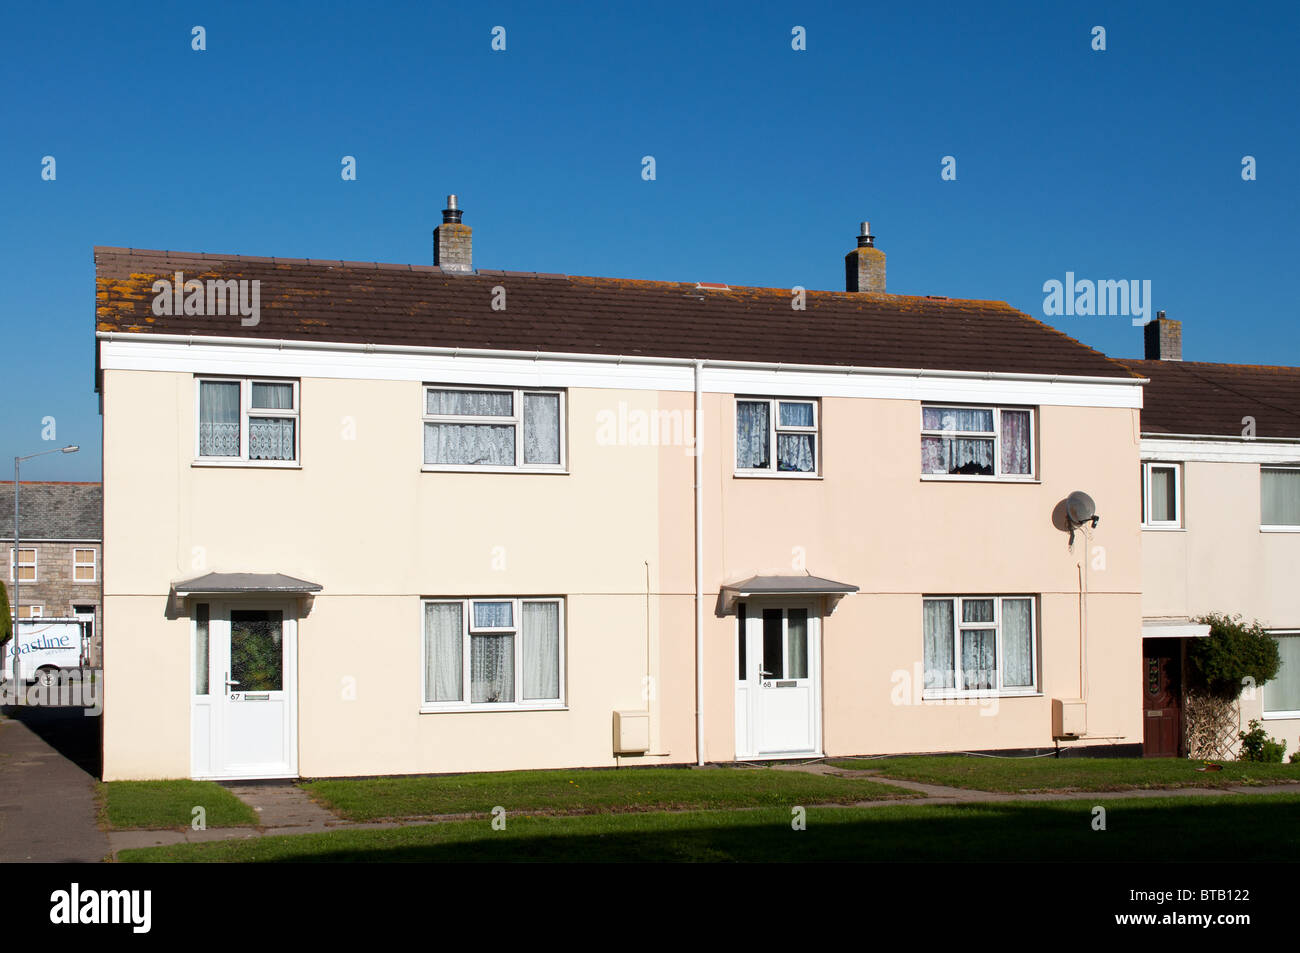 council housing in Redruth, Cornwall, Uk Stock Photo